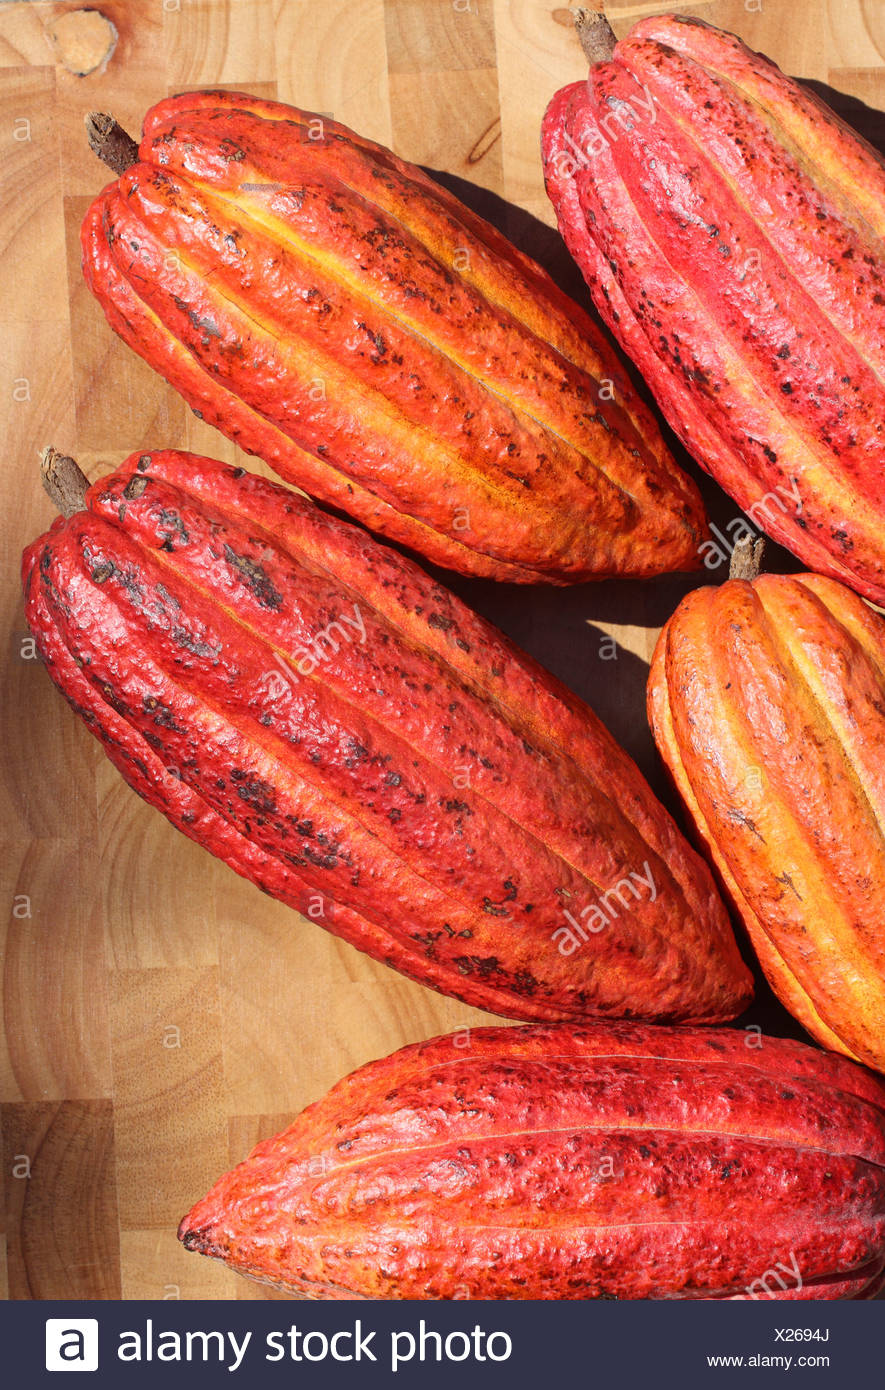 Granada. Close-up de cacao (cacao) maduros frutos. Imagen De Stock